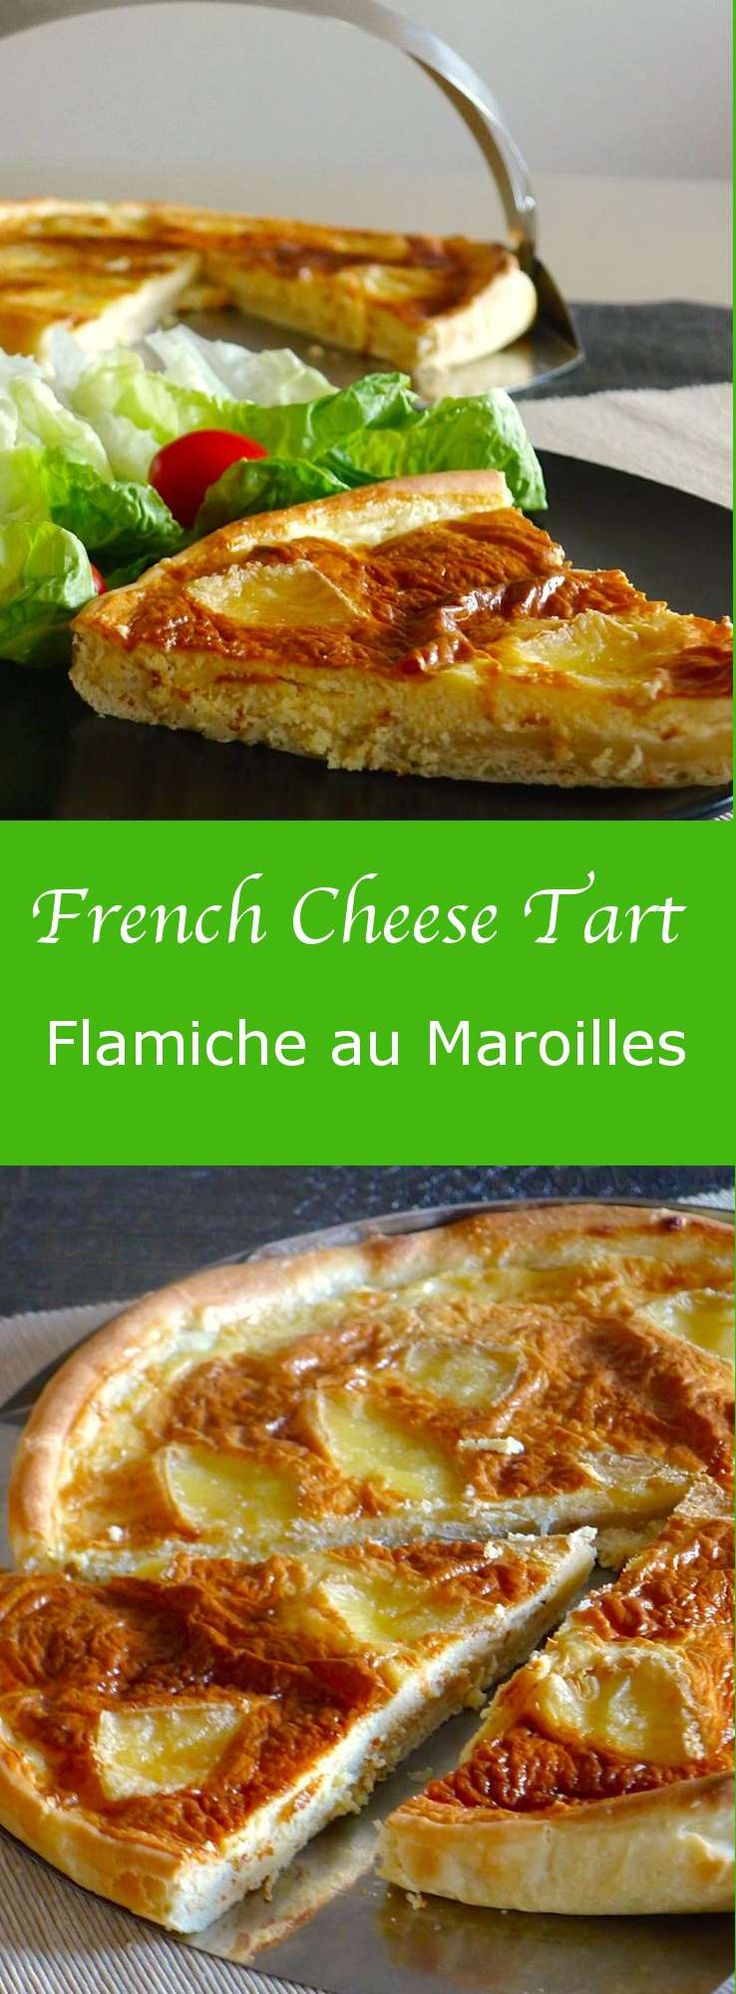 Flamiche au Maroilles, a traditional recipe from the North of France was born on a day when a woman went to Dinant to sell her farm products at the market. #196flavos